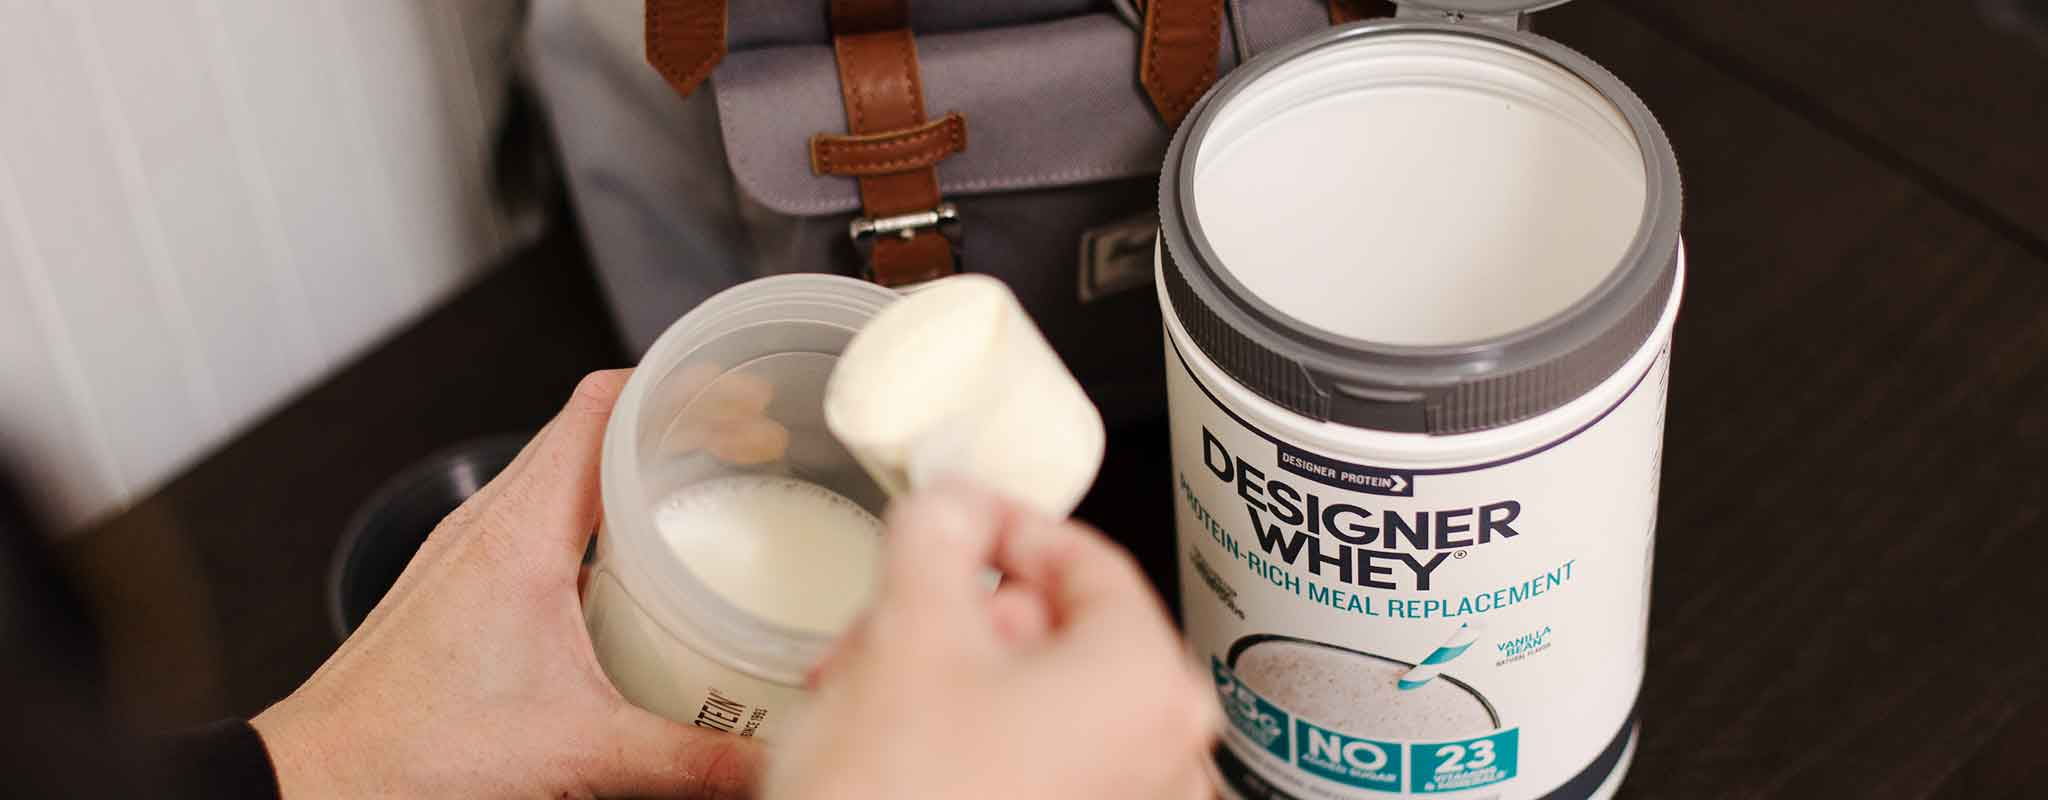 Meal Replacement Protein Powder